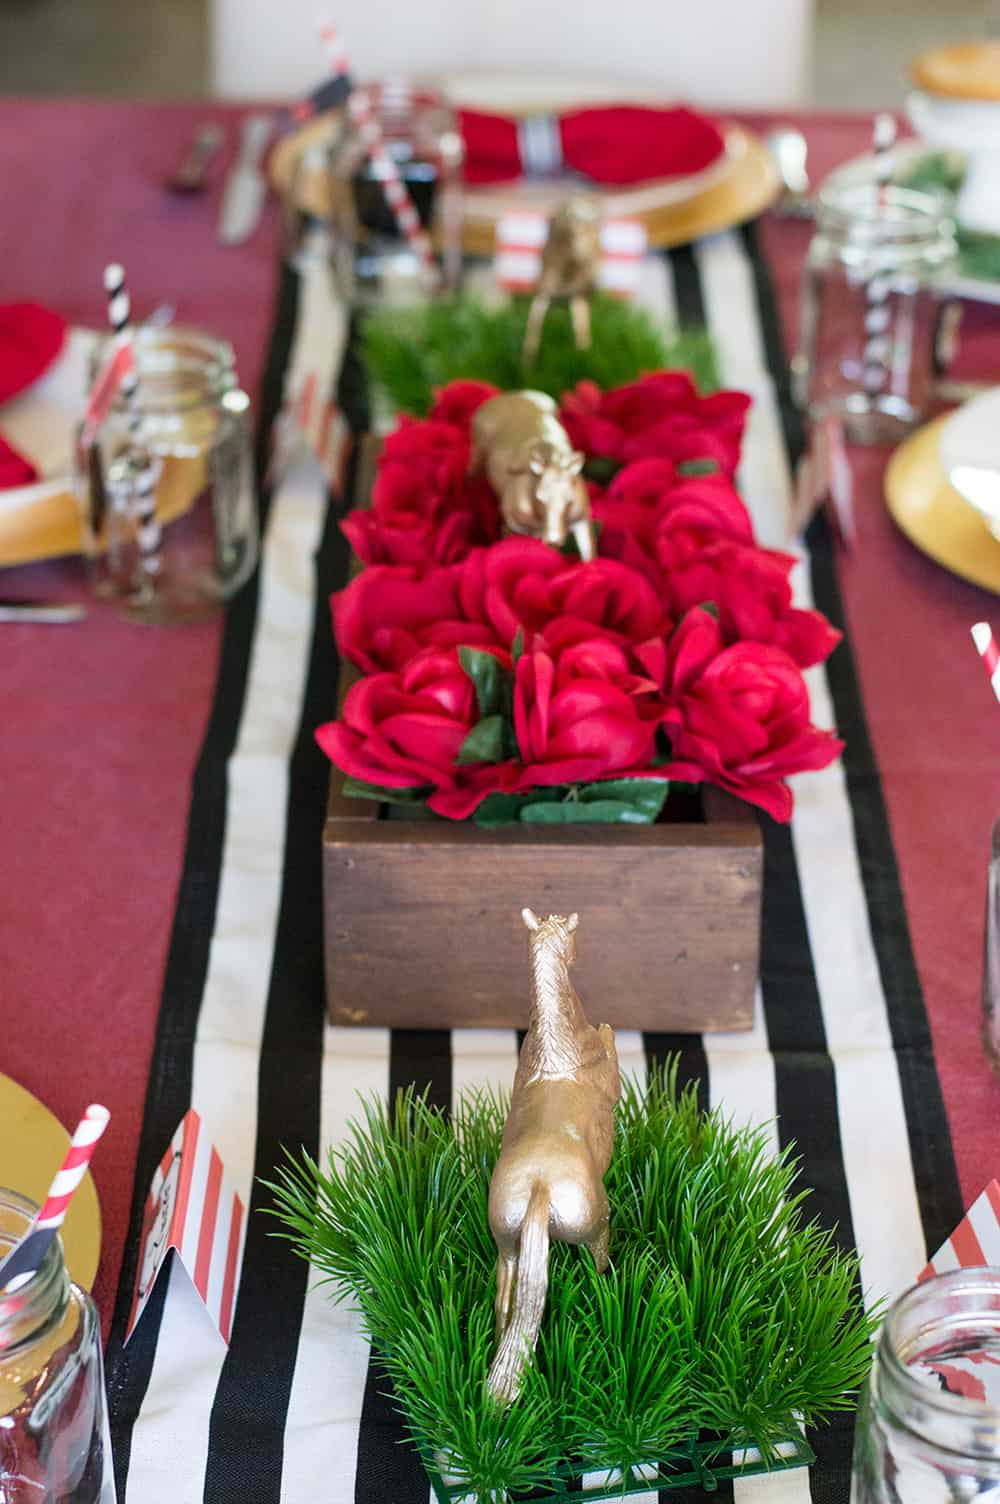 Kentucky Derby Centerpieces styled by Elva M Design Studio and Legally Crafty | All the details at elvamdesign.com